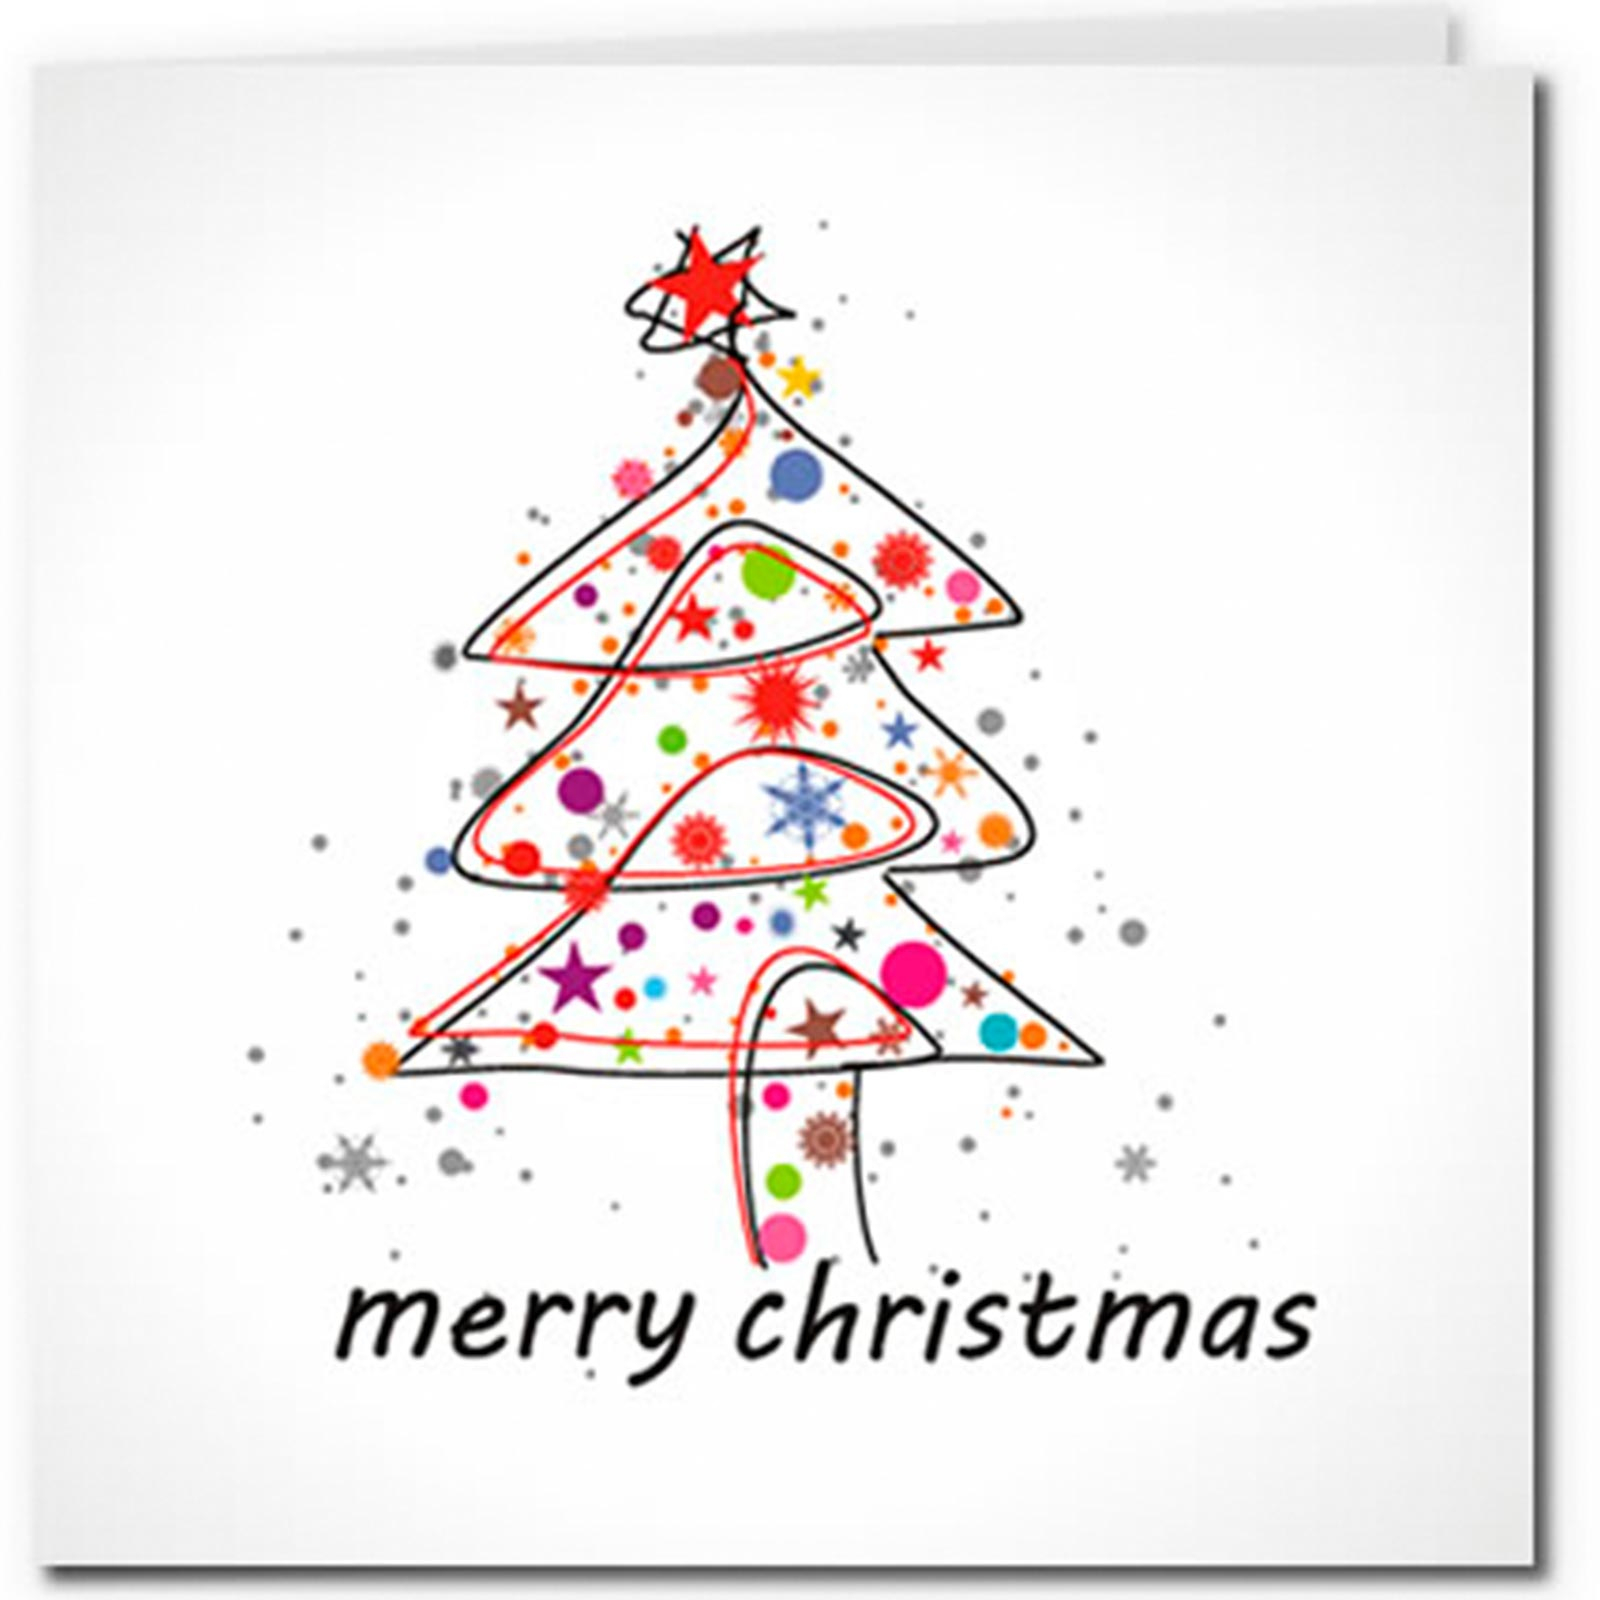 Free Christmas Cards To Print Out And Send This Year | Reader's Digest - Free Printable Xmas Cards Download